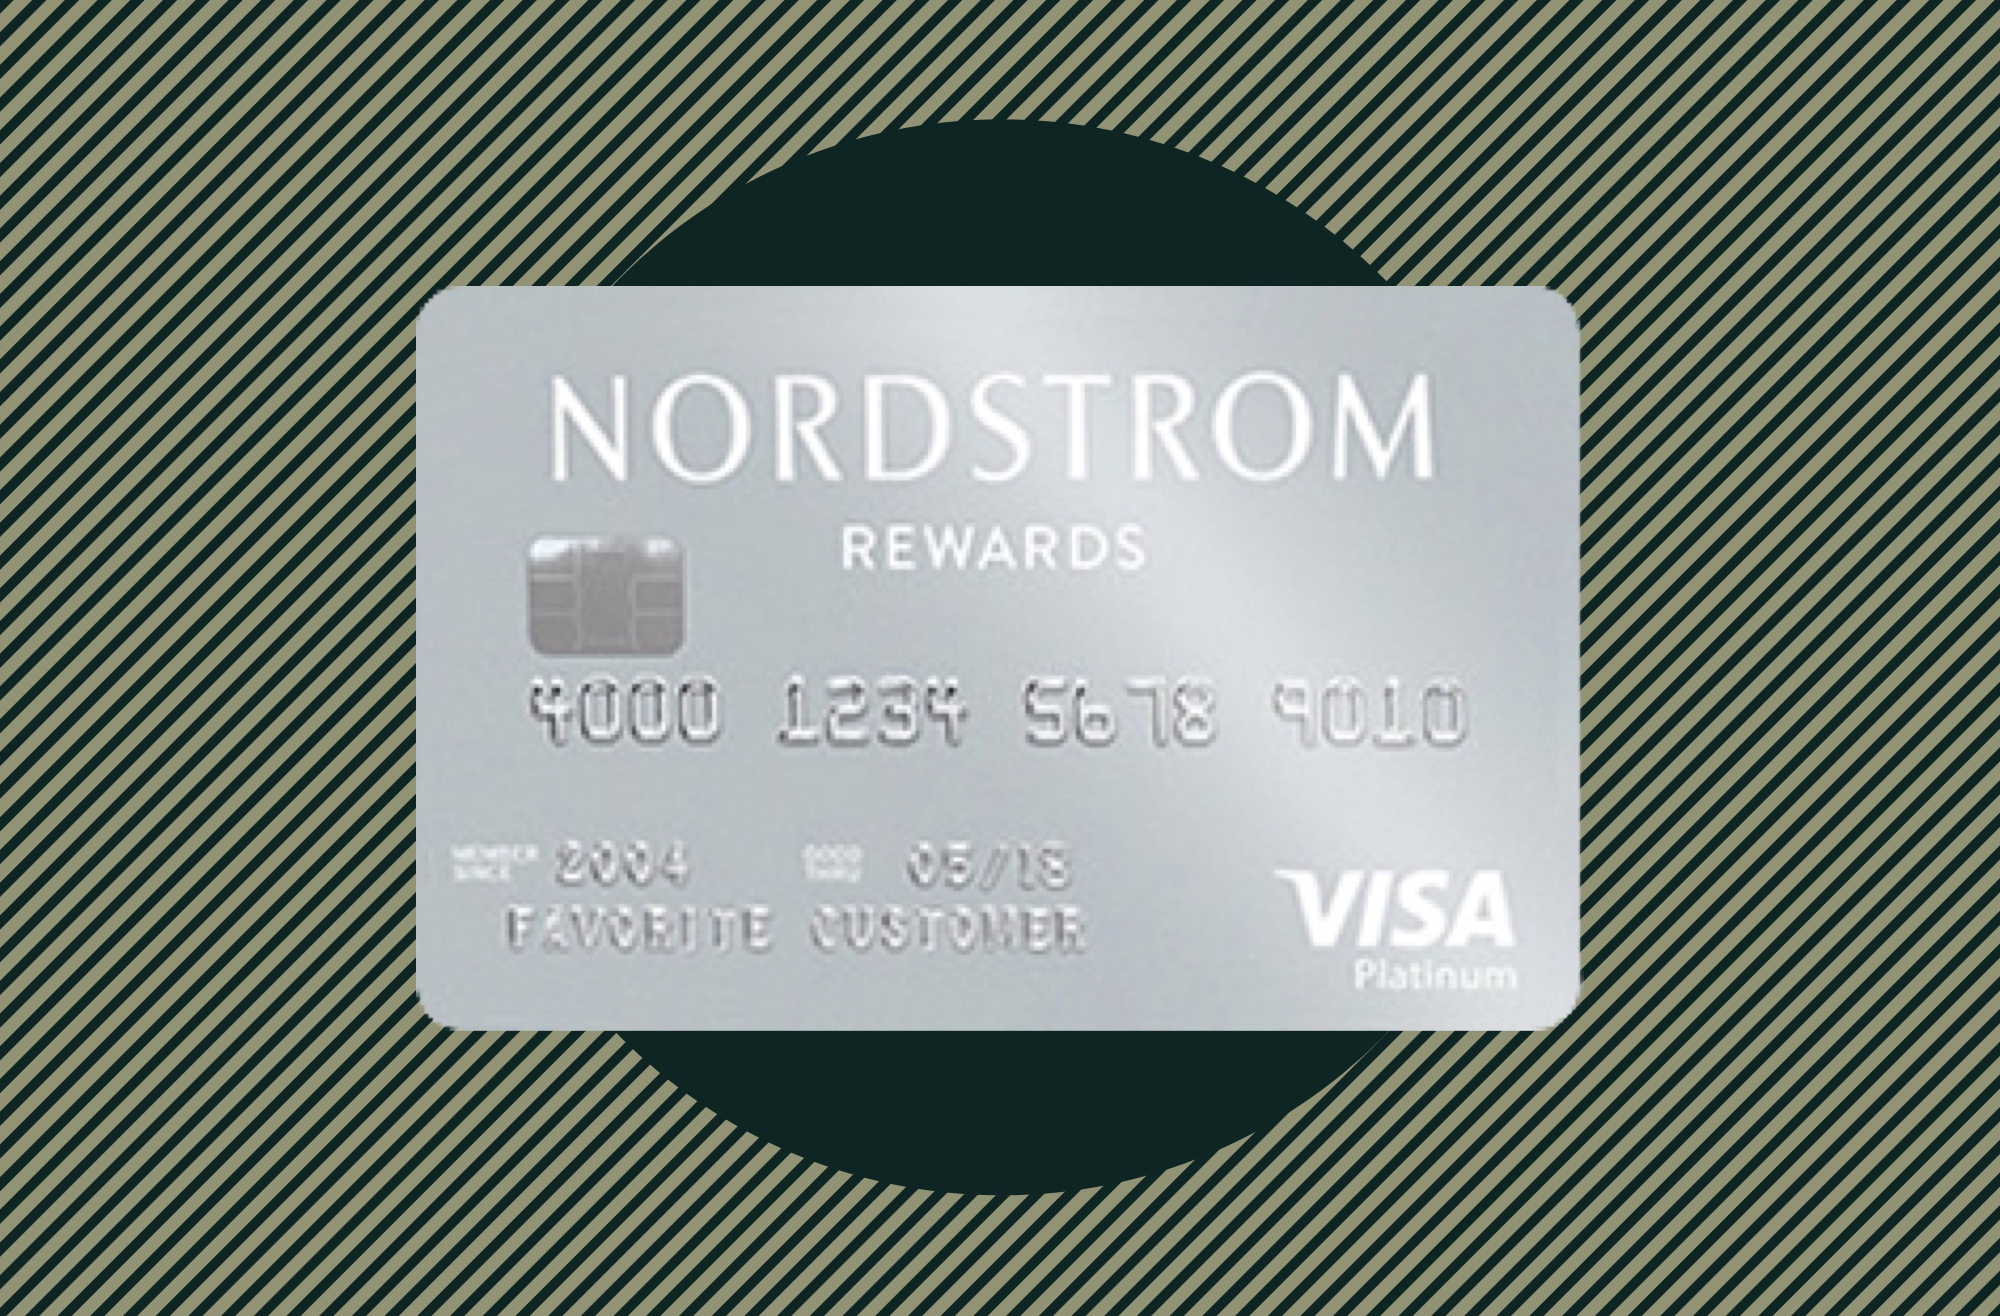 A photo to accompany a story about the Nordstrom Visa Signature Card